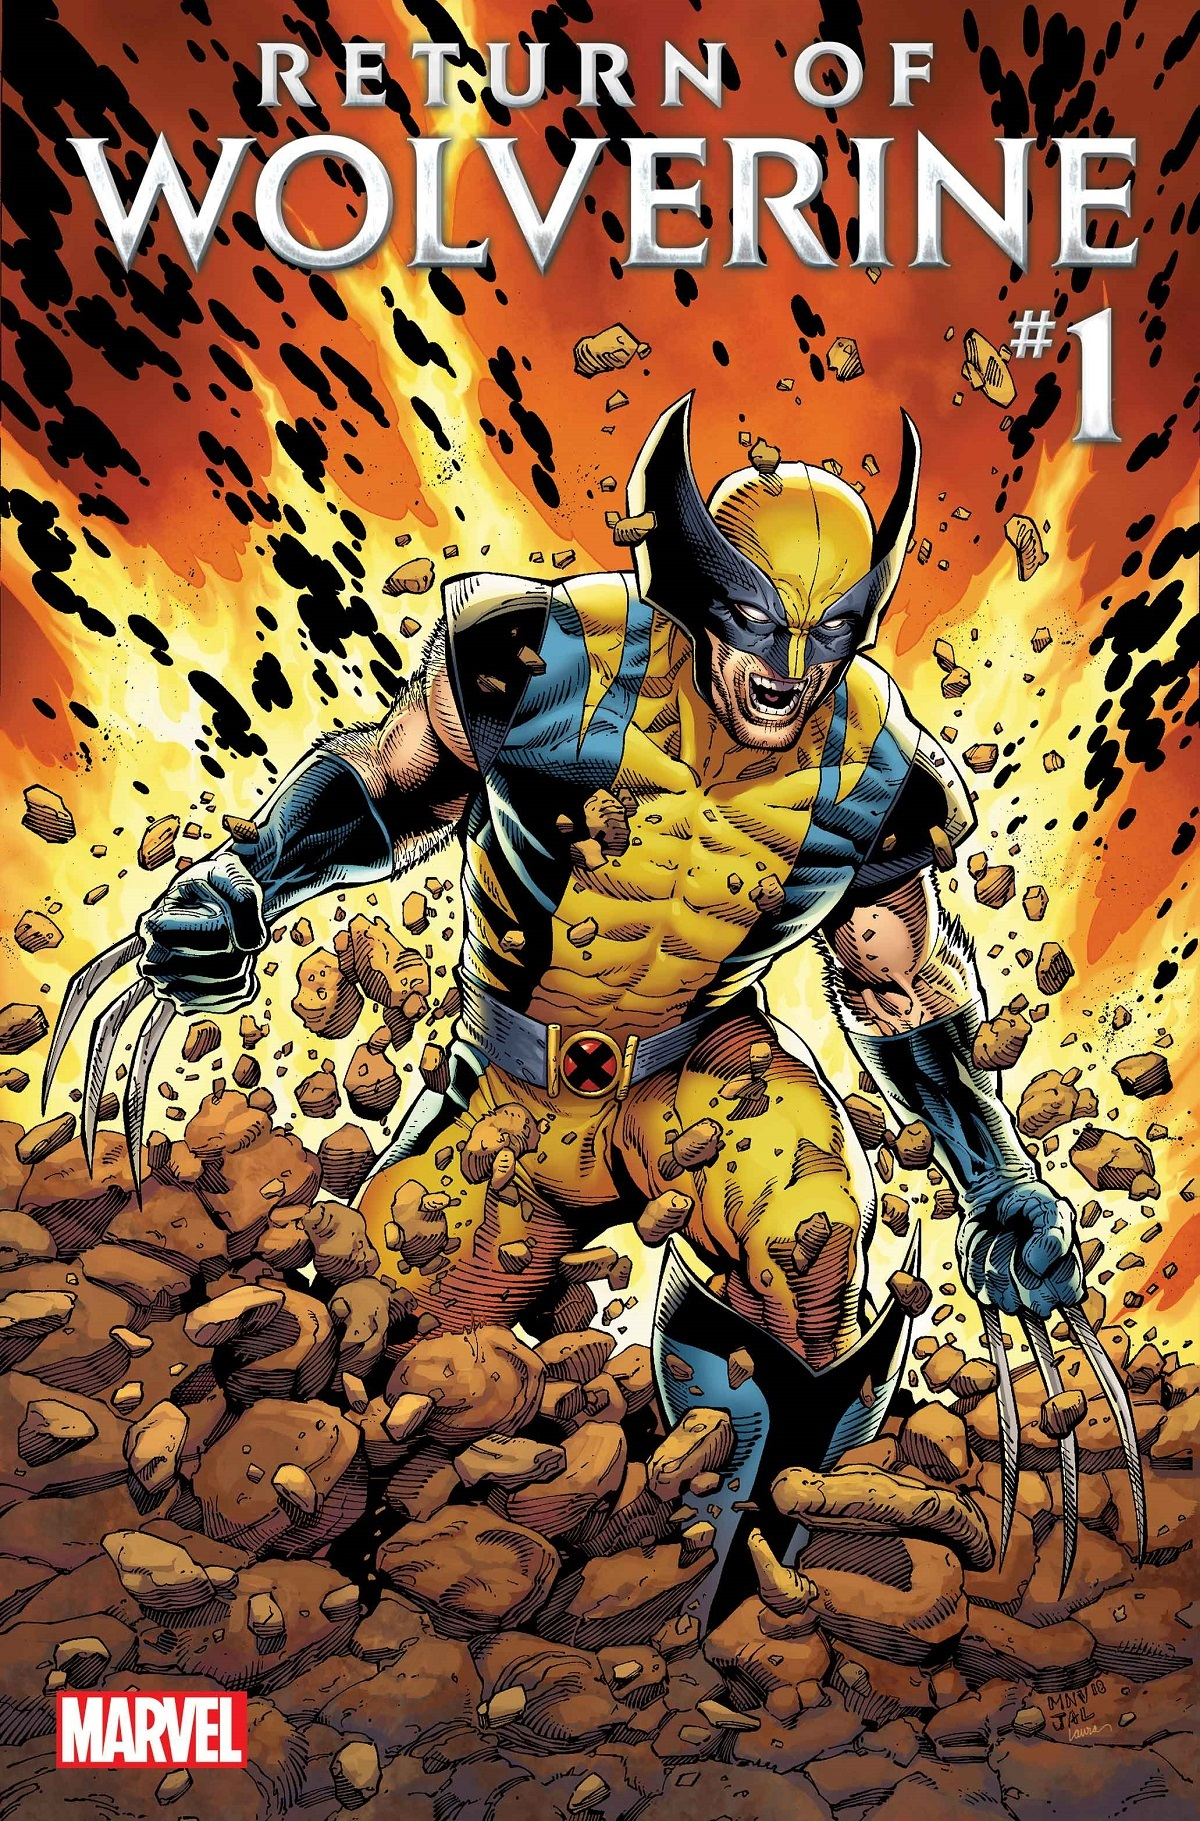 Return of Wolverine #1 cover by Steve McNiven